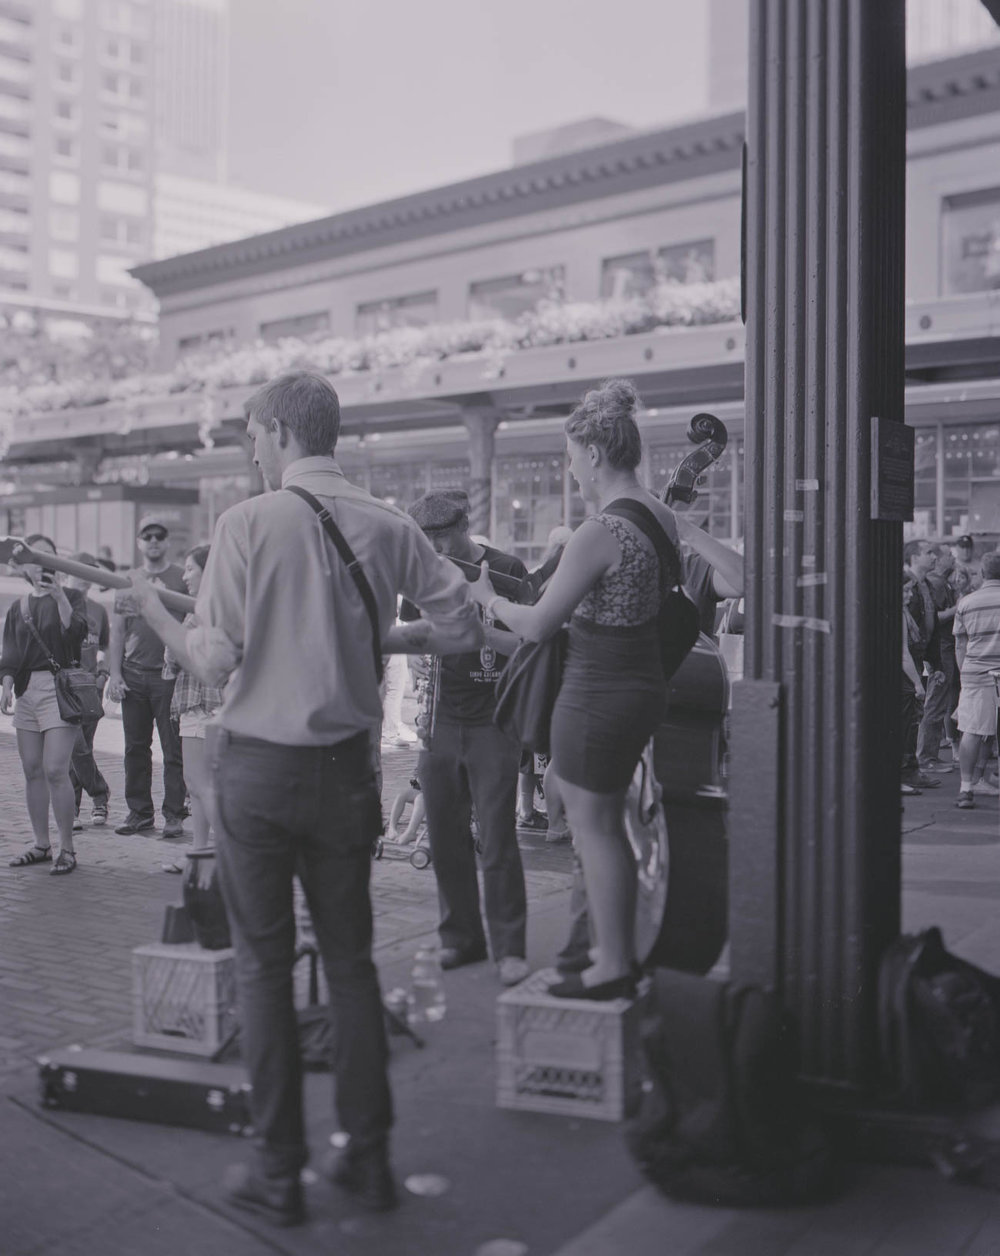 Music at the Market, Pike's Place Market, Seattle, WA, August 2017